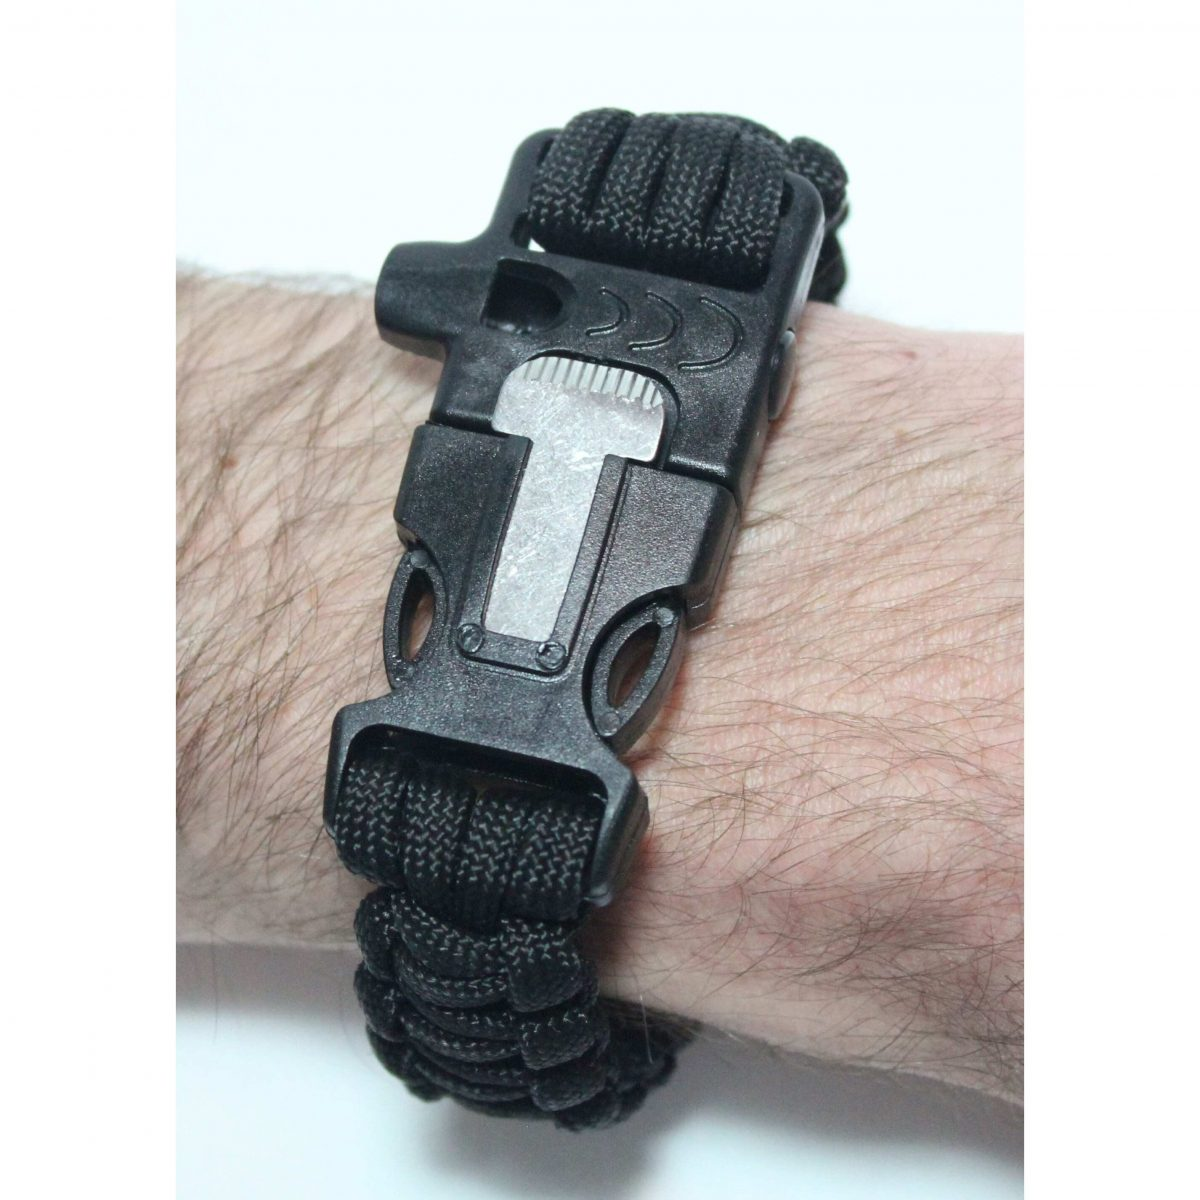 Paracord Survival Bracelet with Fire Starter and Whistle Built In - 9 Inch Length-454